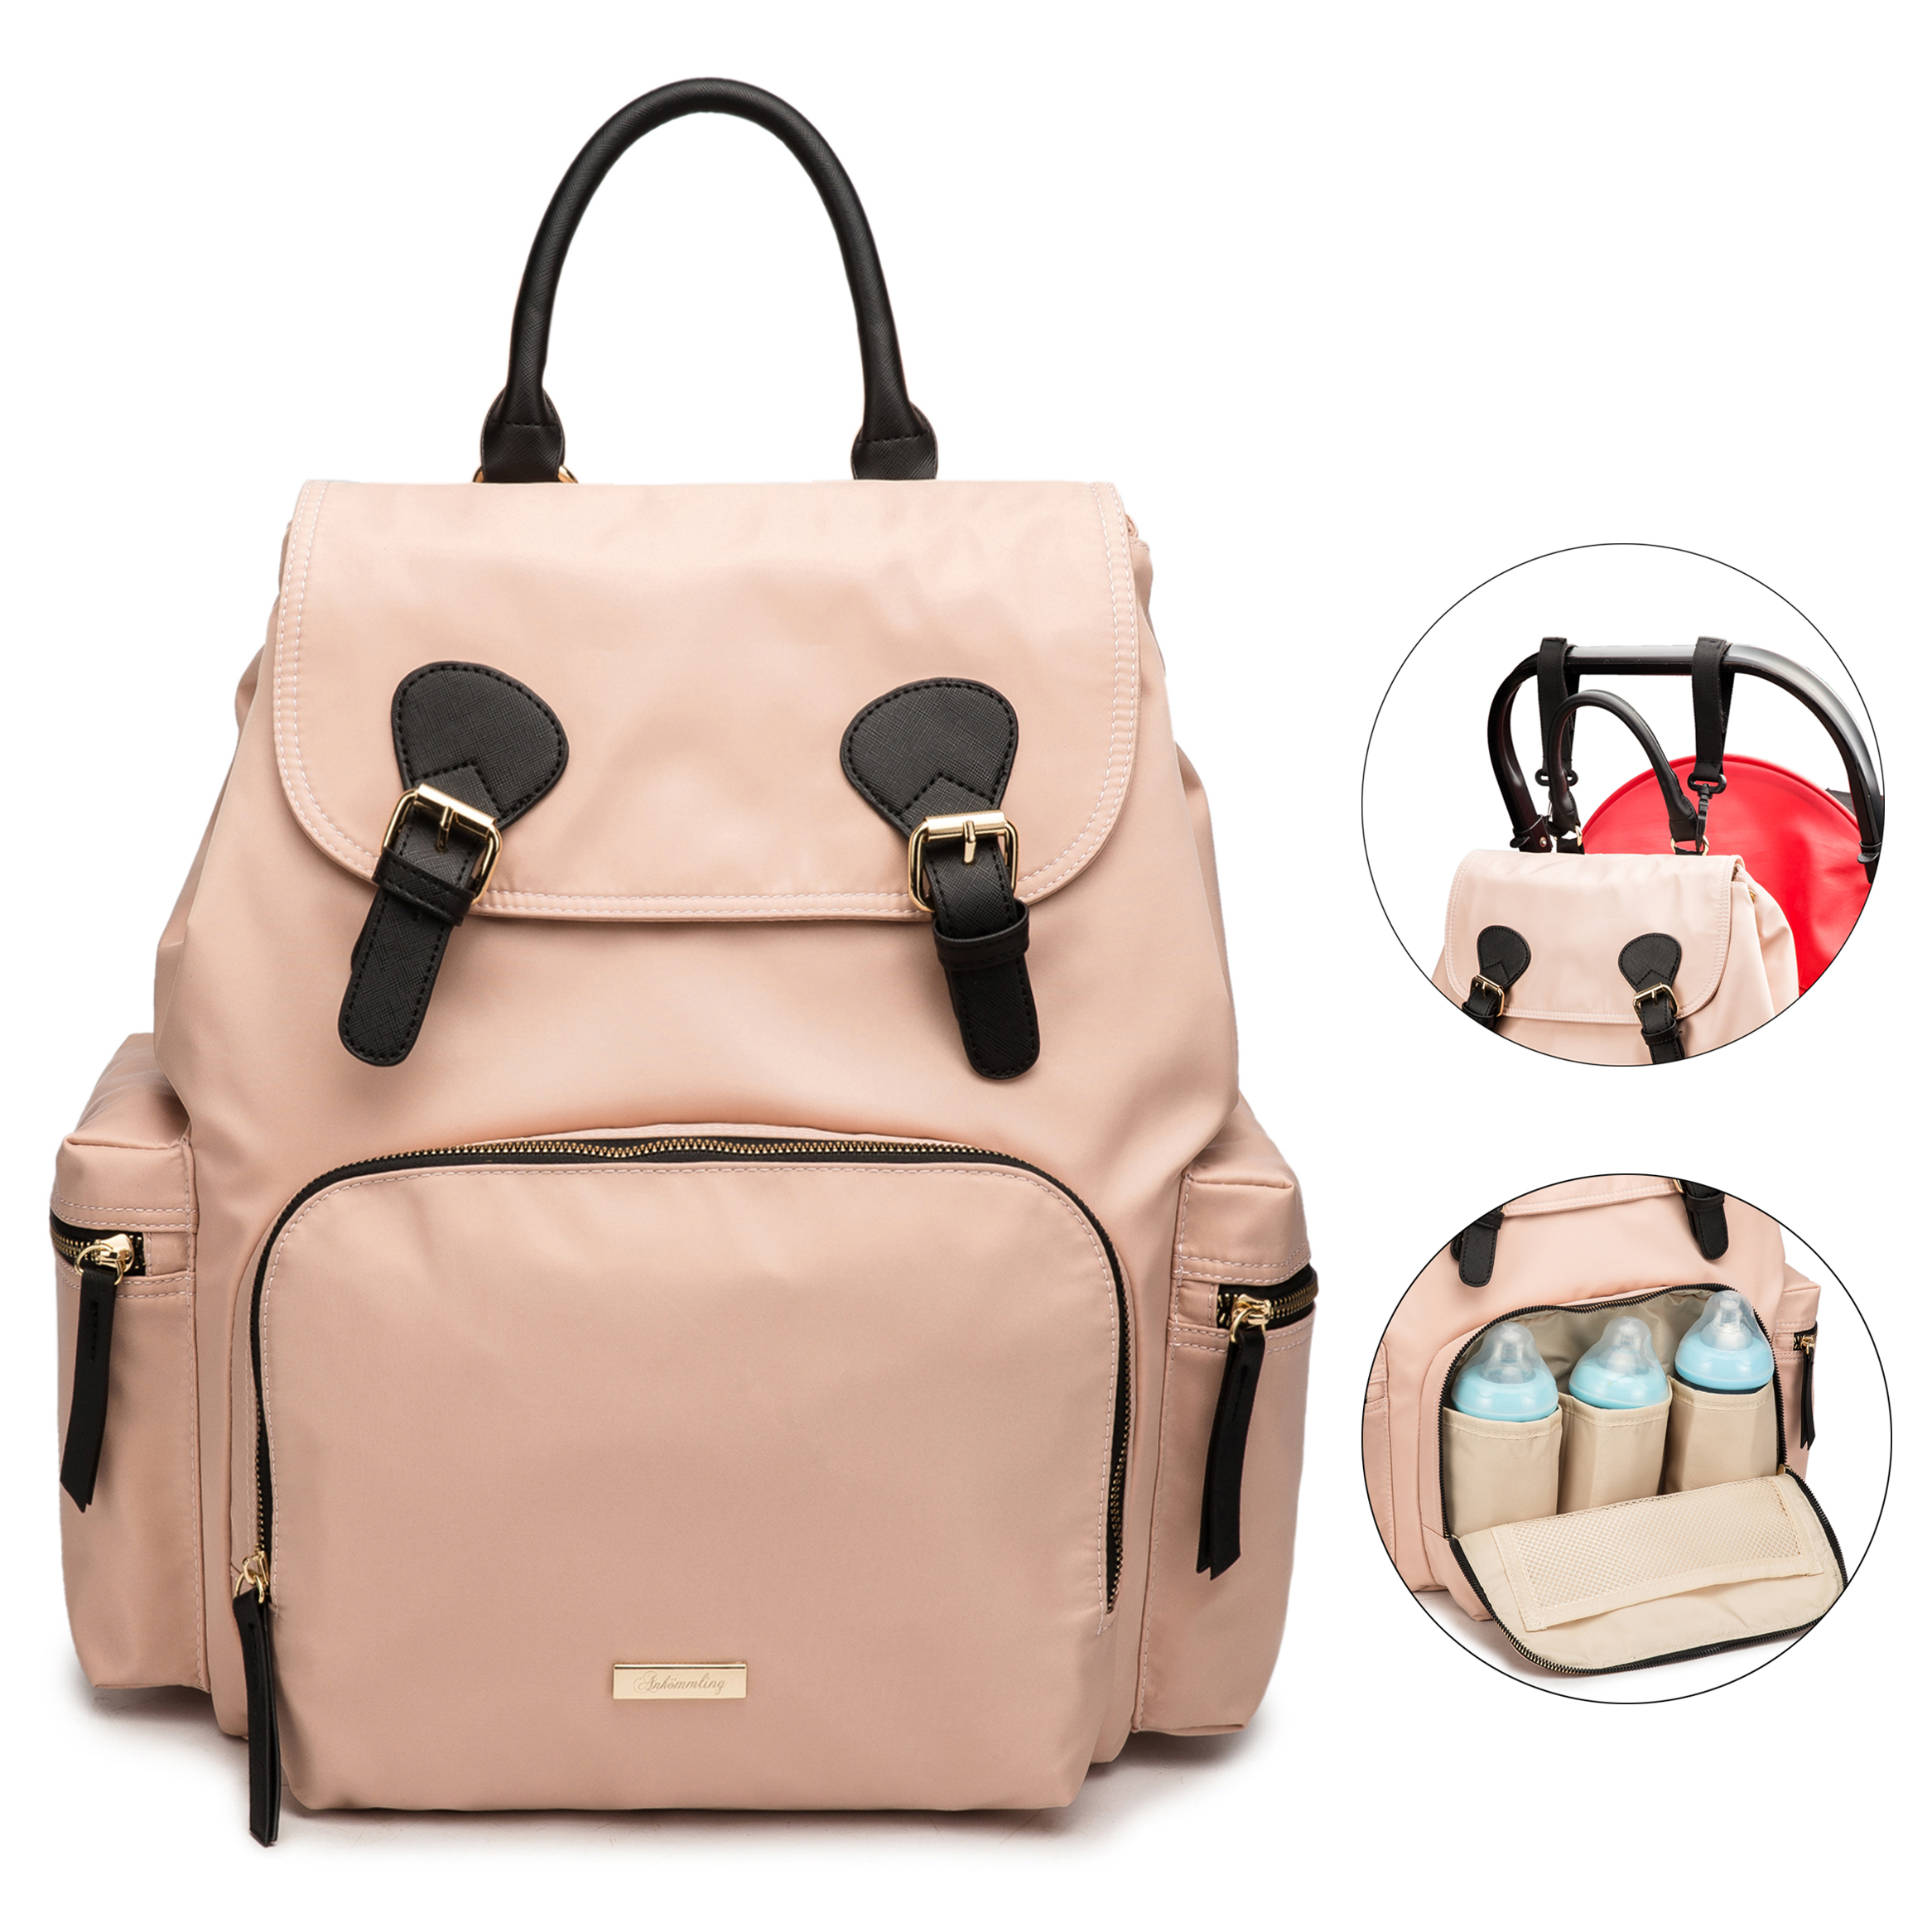 New Large Capacity Waterproof Mother Baby Diaper Bag Backpack Maternity Nappy Changing Bags For Mom Mommy Stroller Organizer